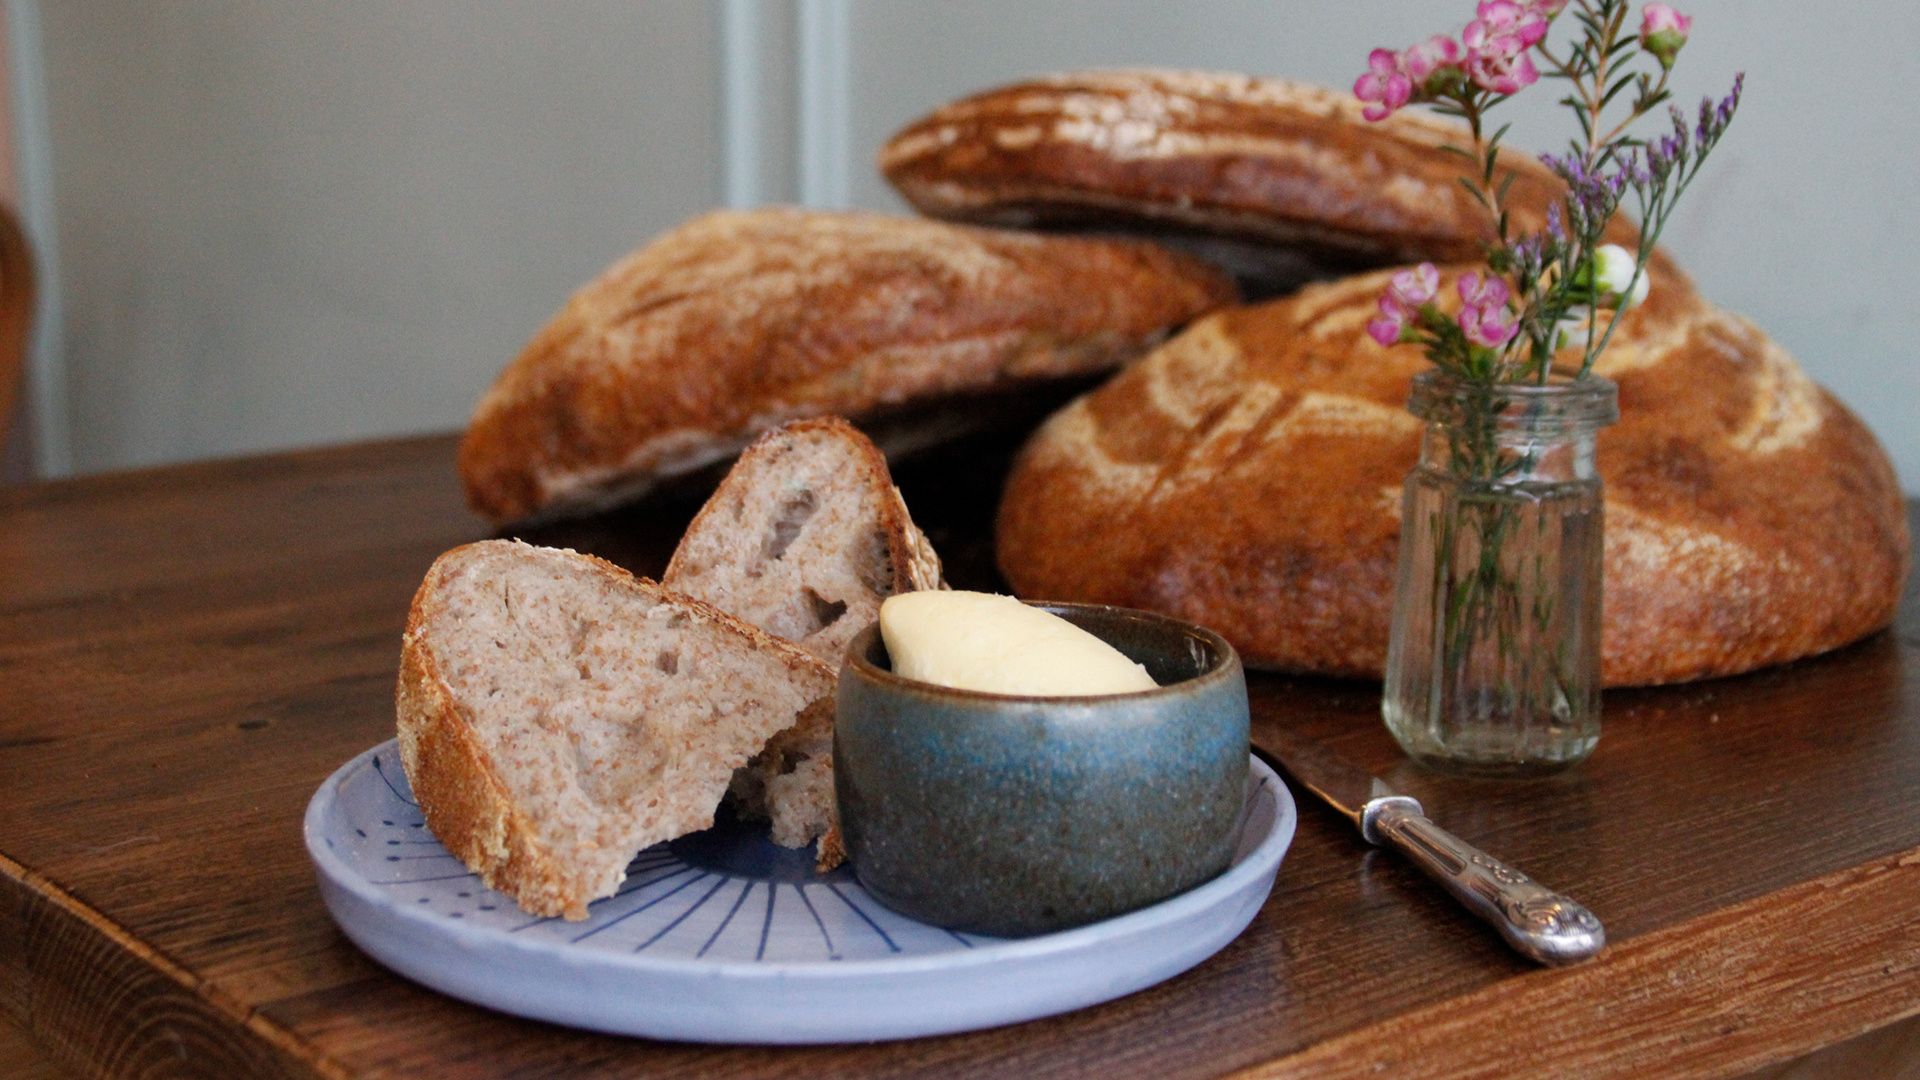 Make Minnow's rosemary sourdough